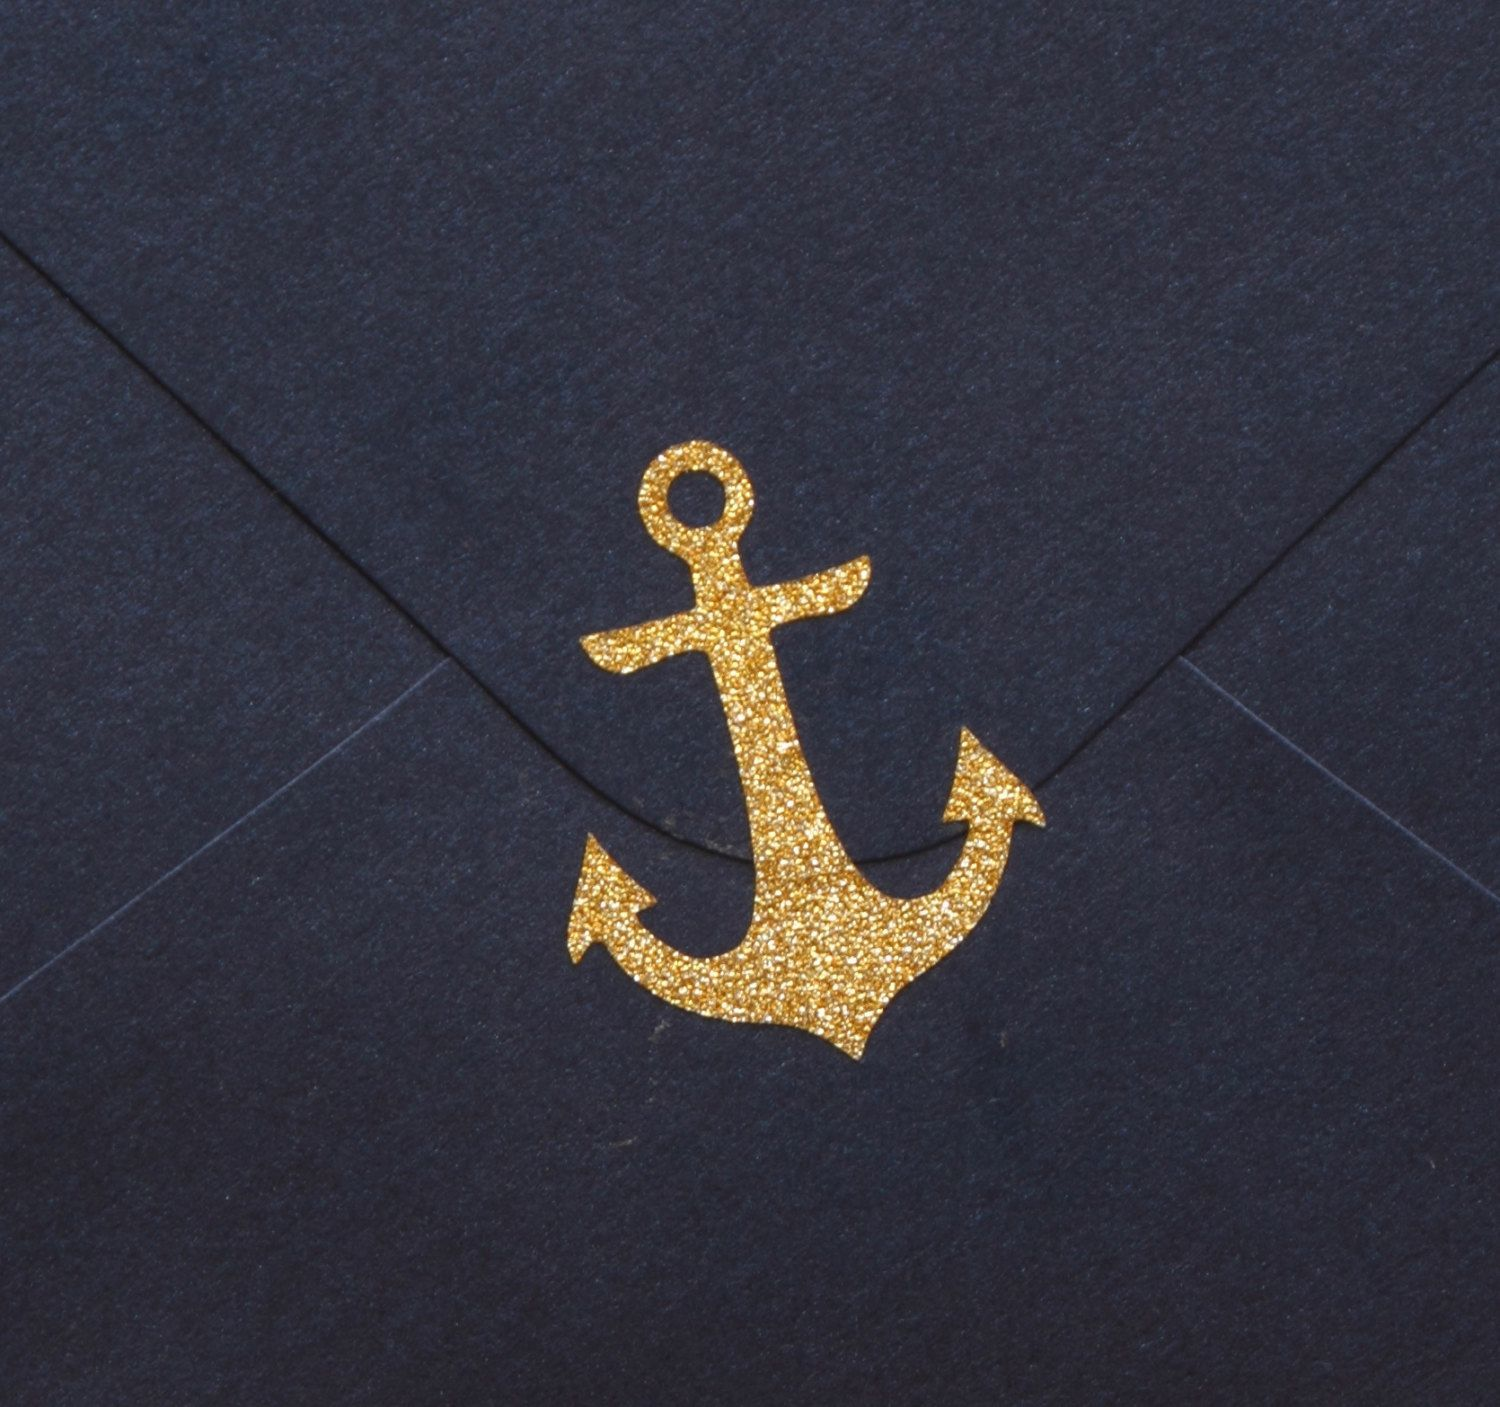 25 Small Gold Glitter Anchor Stickers, Vinyl Anchors